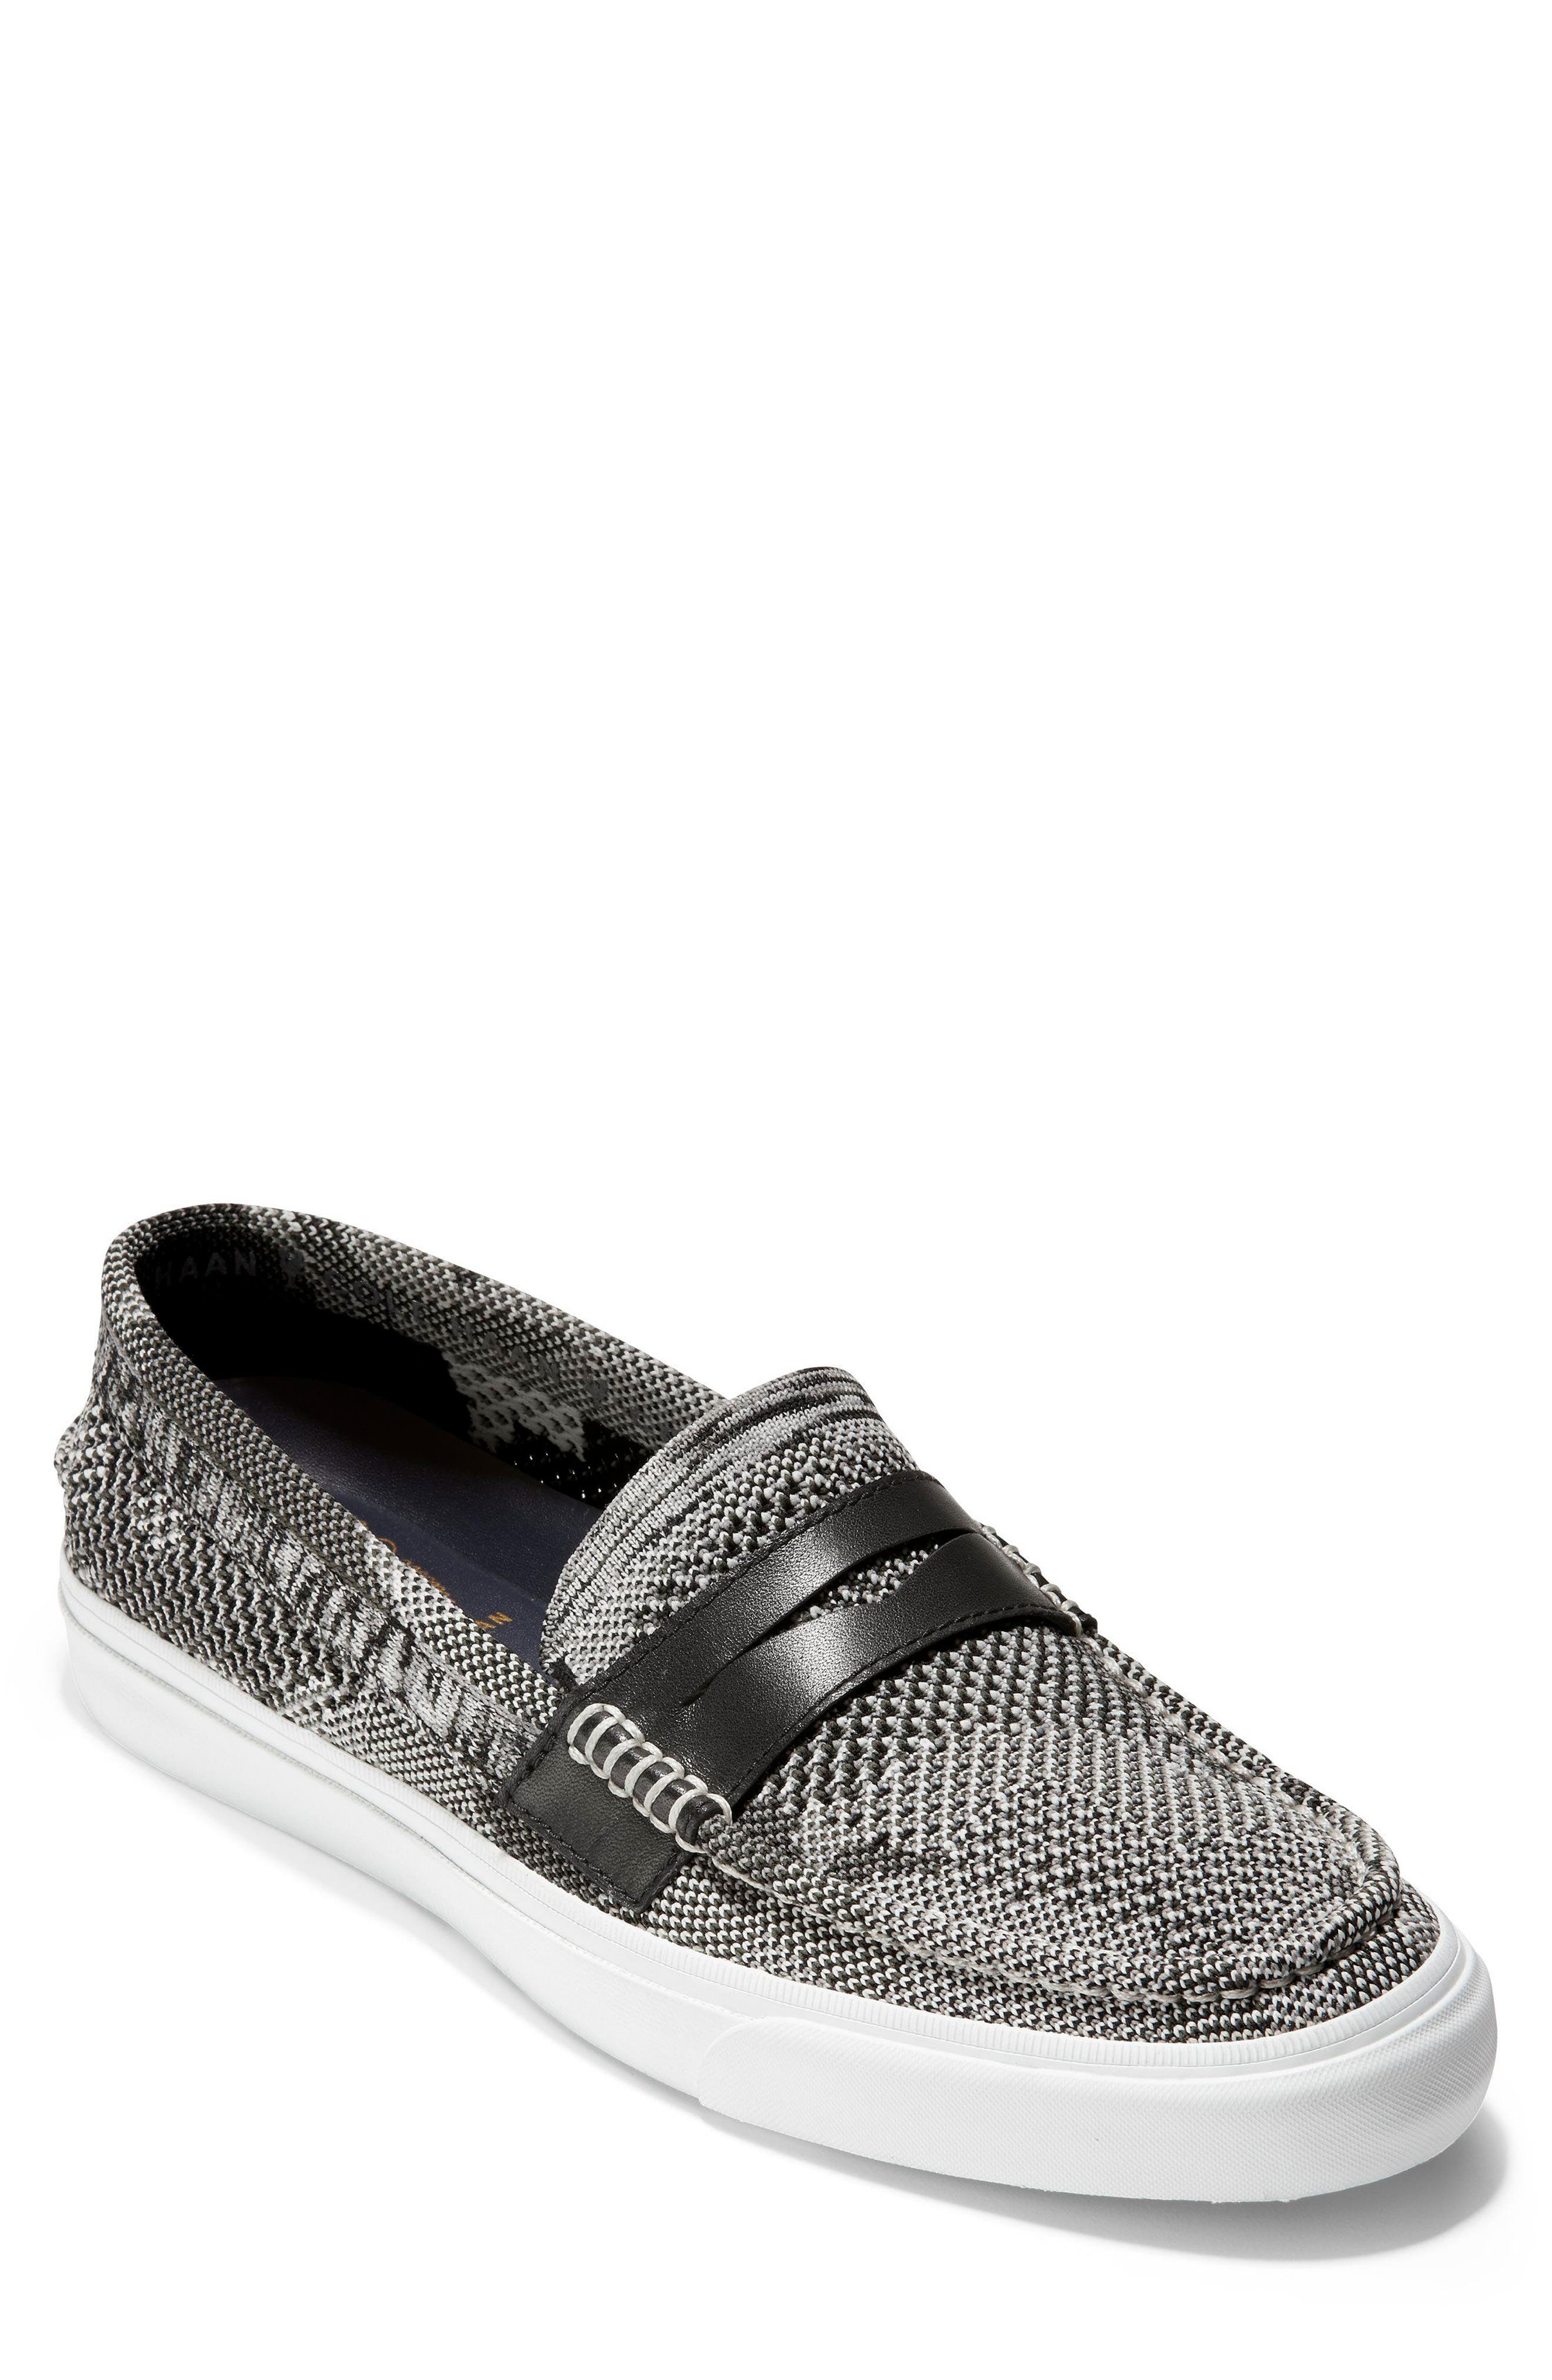 Pinch Weekend LX Penny Loafer,                             Main thumbnail 3, color,